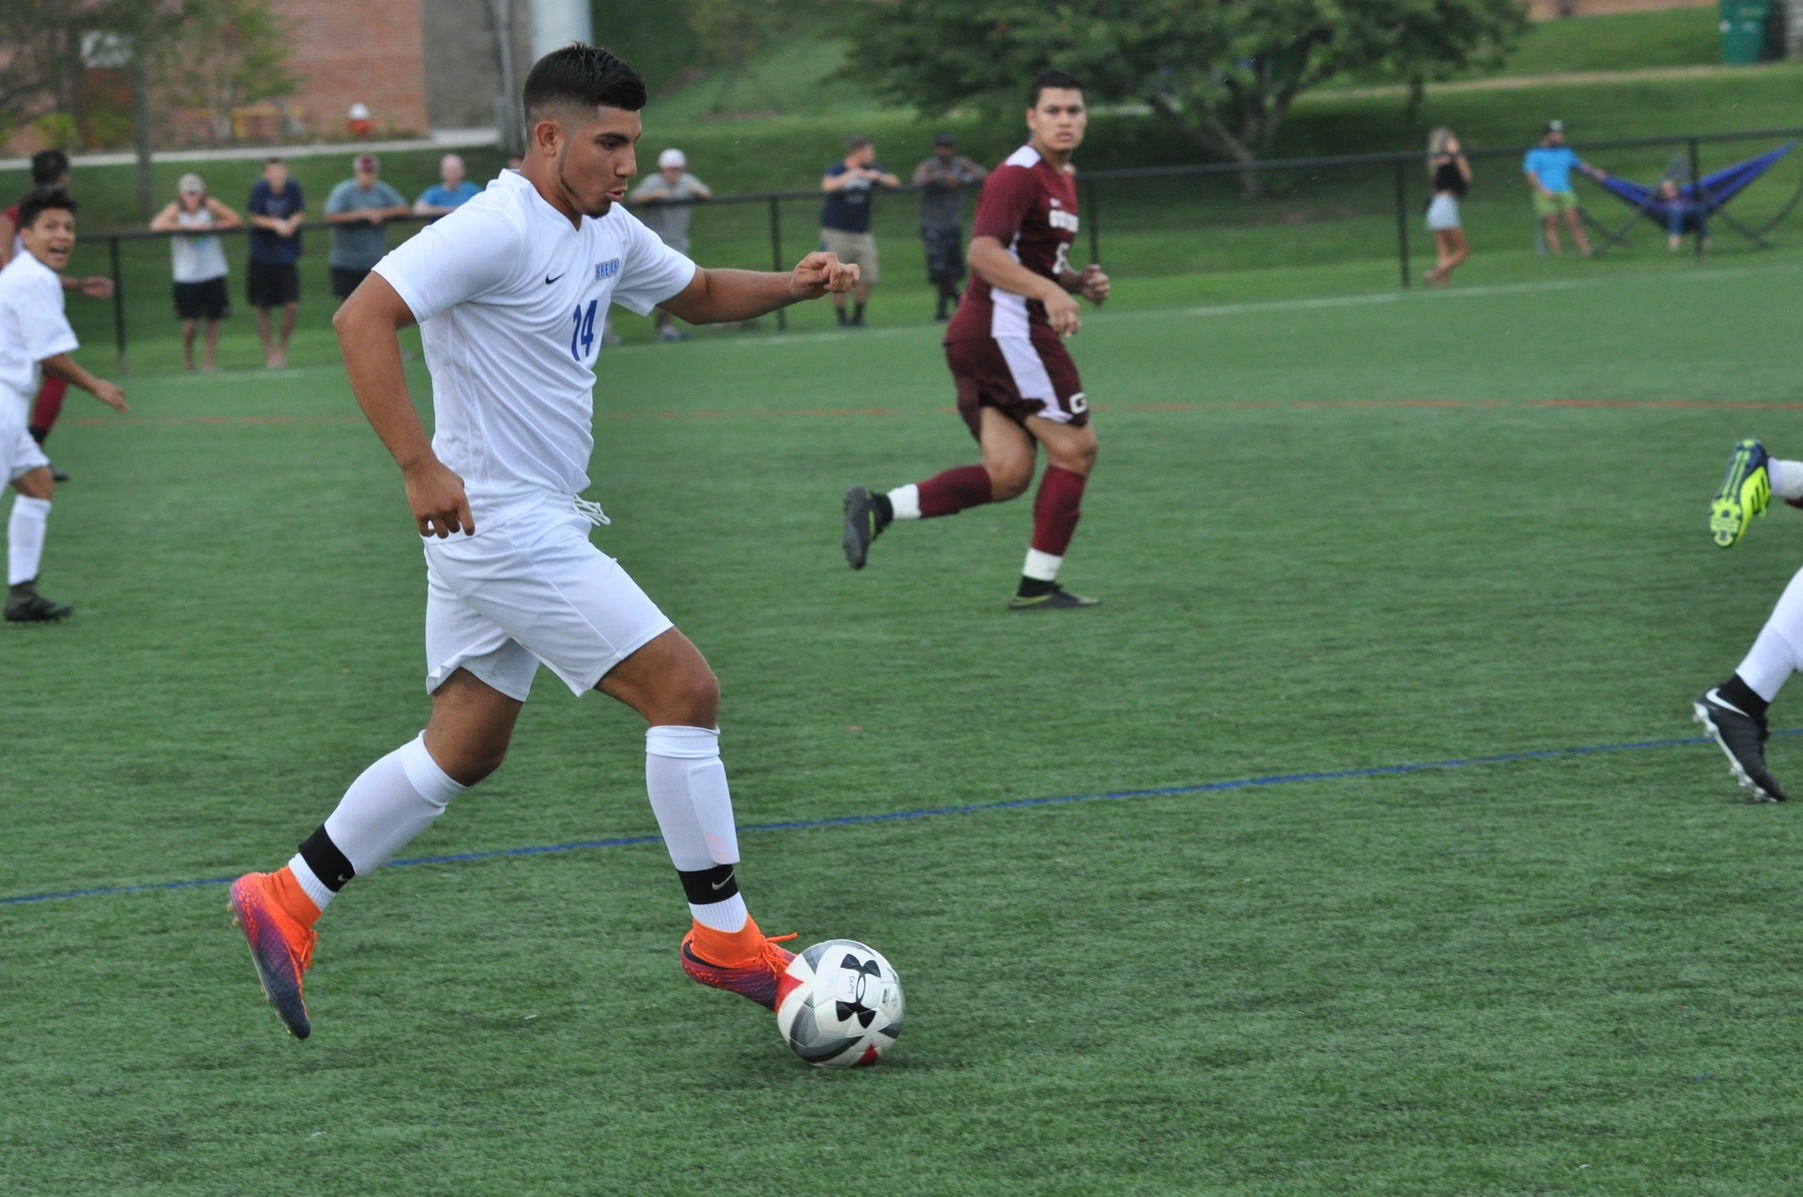 Men's soccer looks to bounce back in weekend matches